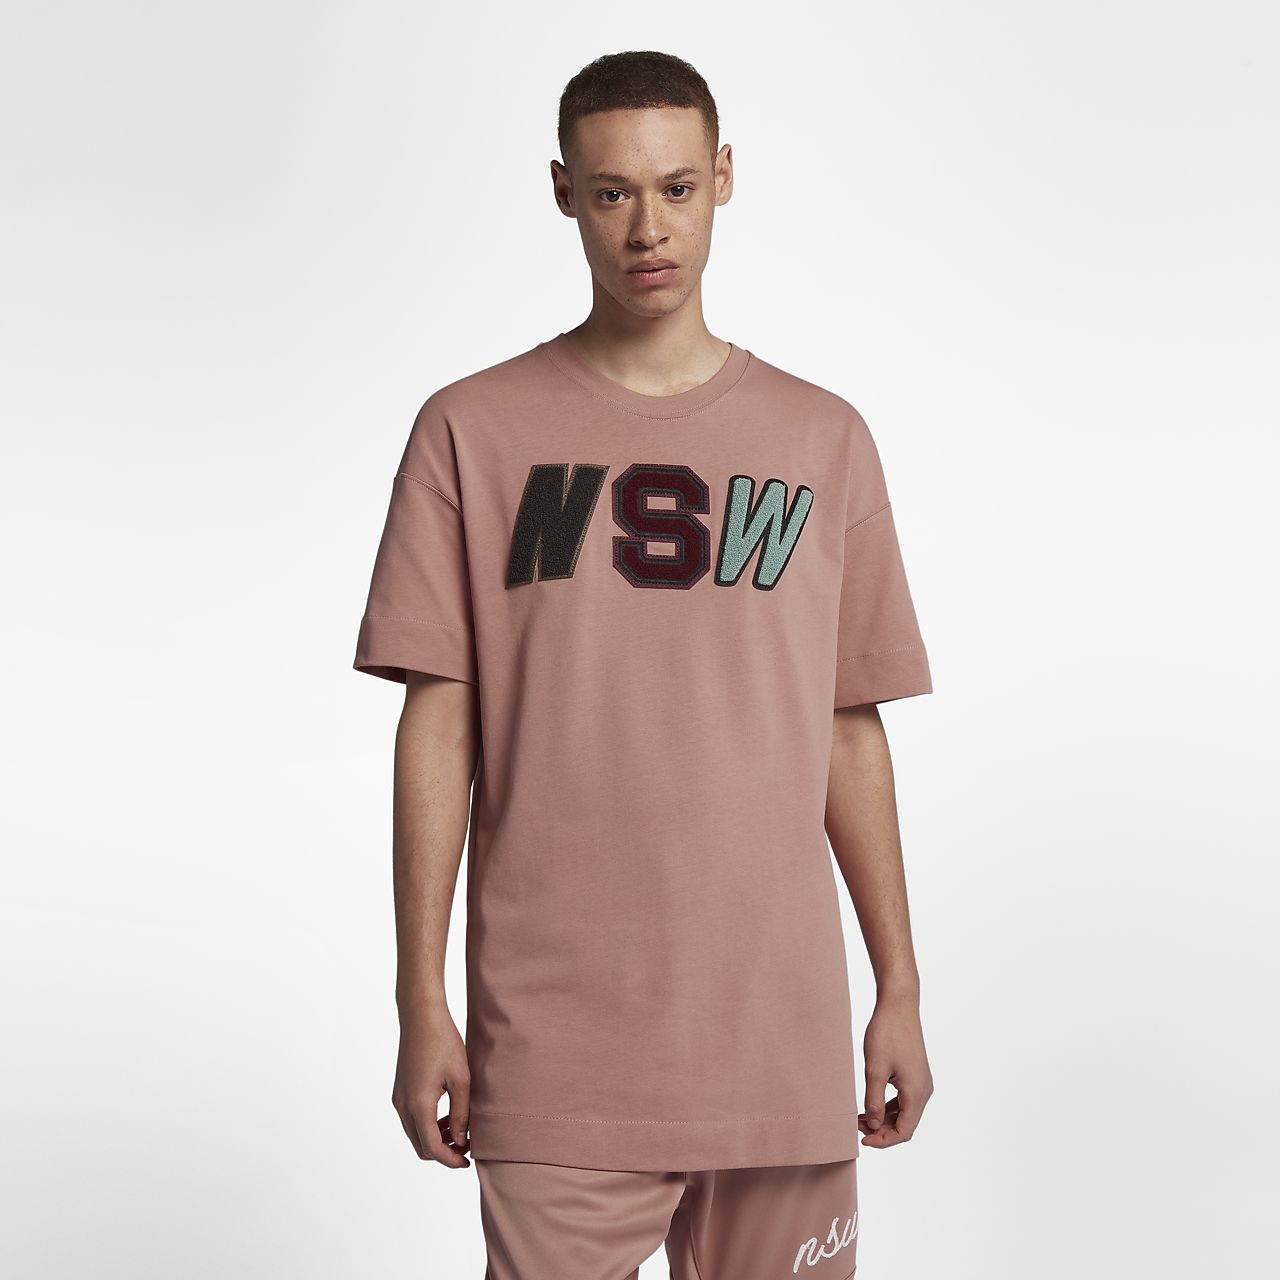 Tee-shirt Nike Sportswear NSW pour Homme